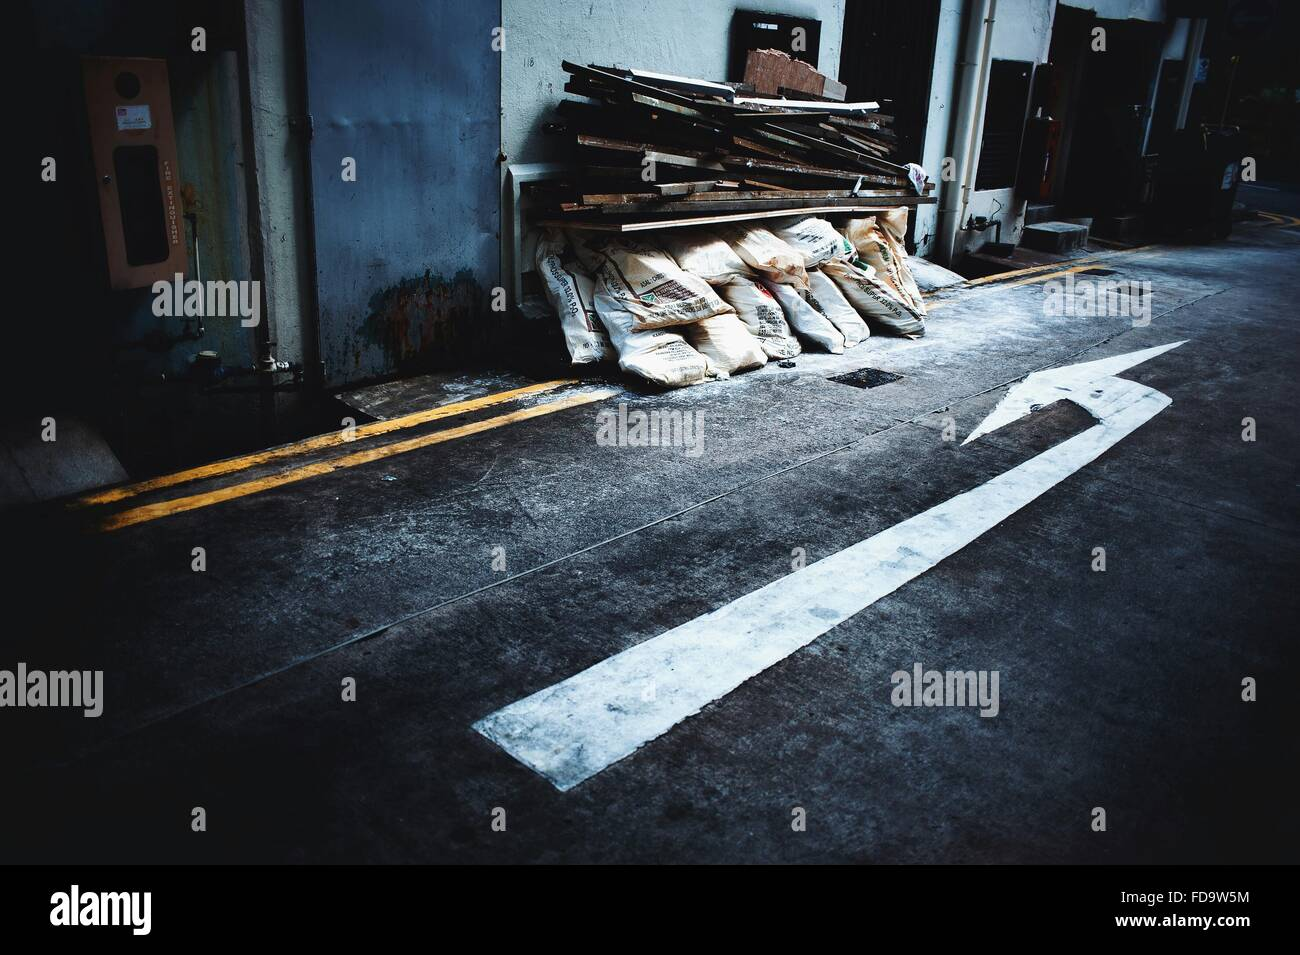 Arrow Sign On Road Pointing At Stack Of Sacks - Stock Image